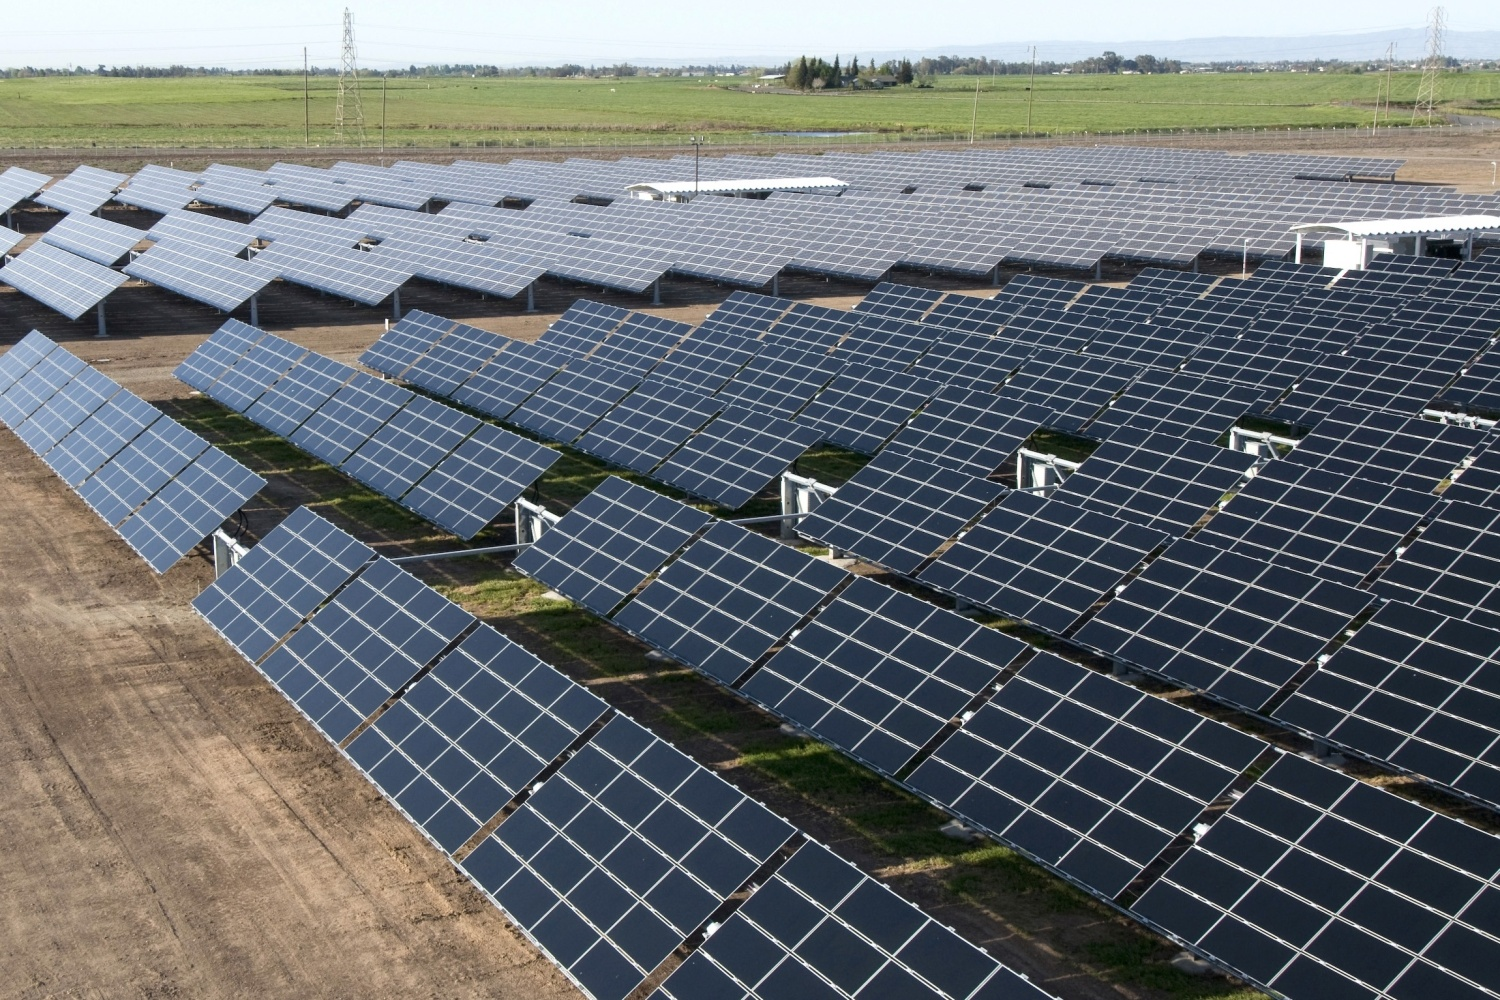 Conergy Brings World's First Known Thin-Film Solar Energy